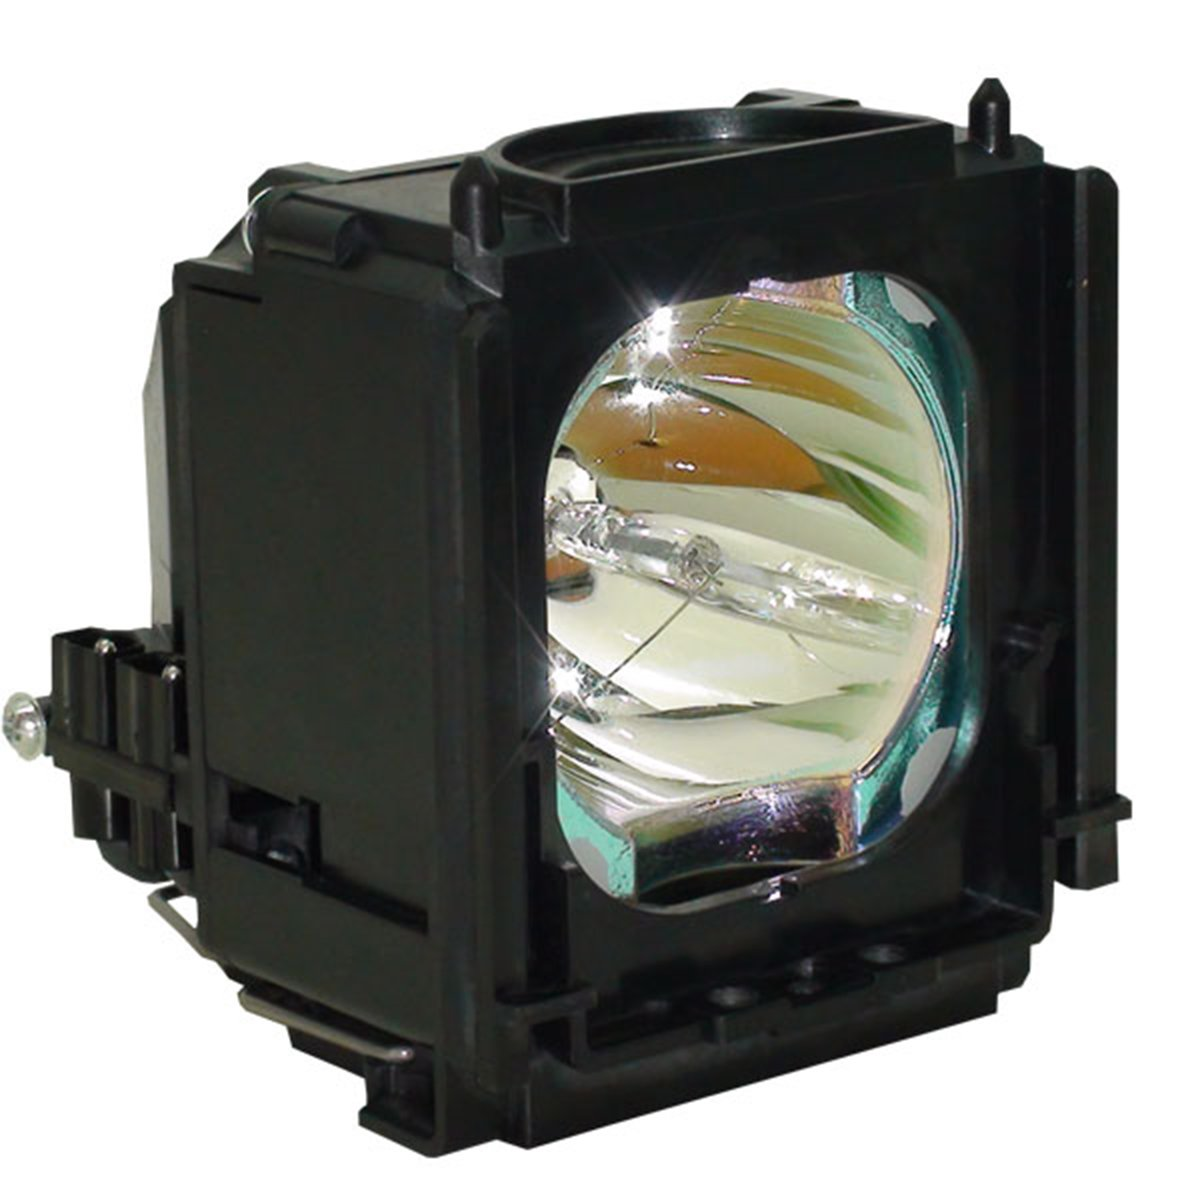 Samsung HL-S6767W HLS6767W Lamp with Housing BP96-01472A